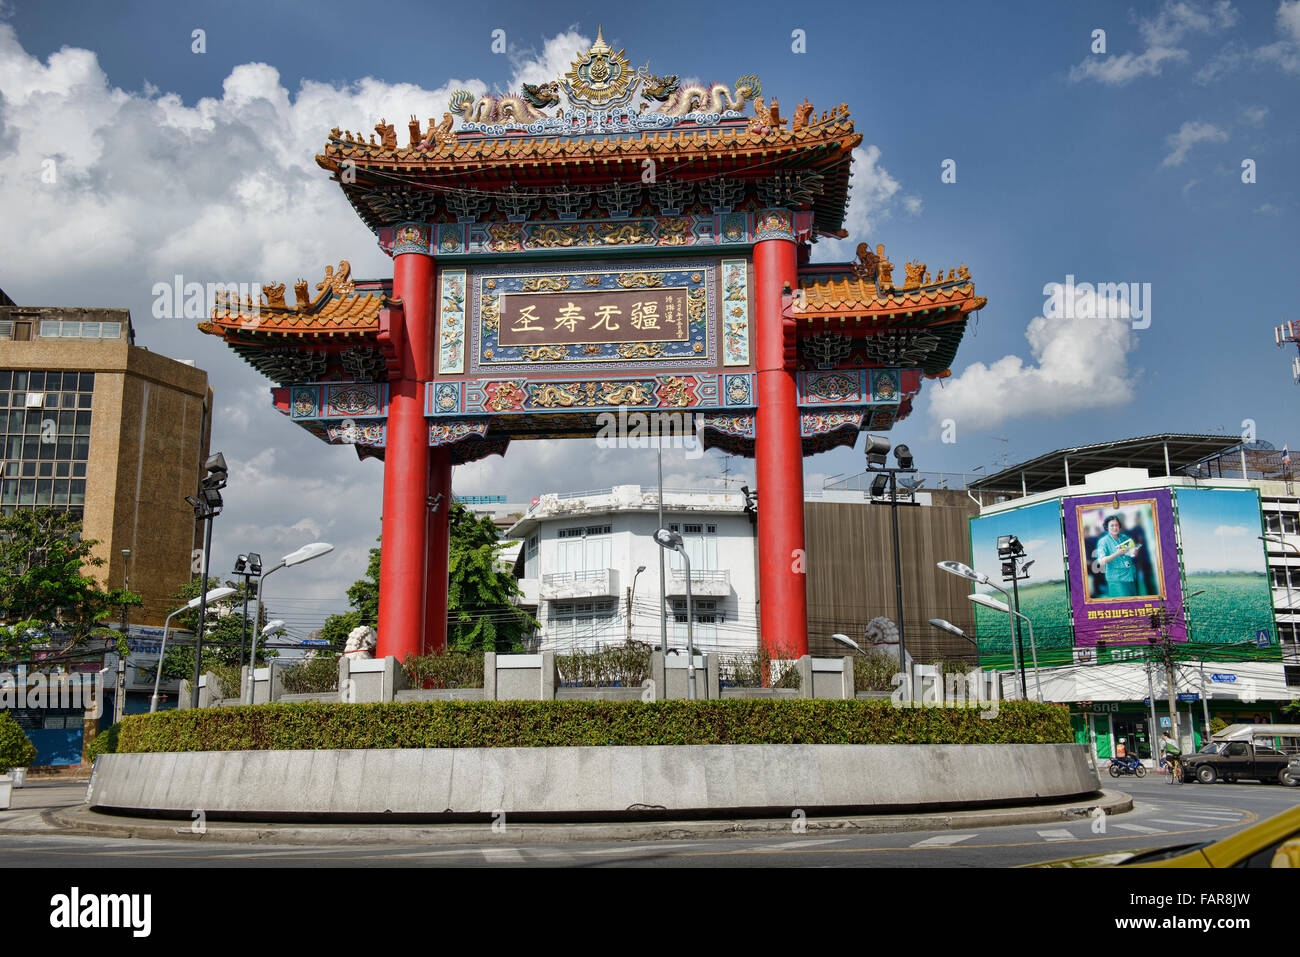 The Chinatown Gate in Bangkok, Thailand - Stock Image